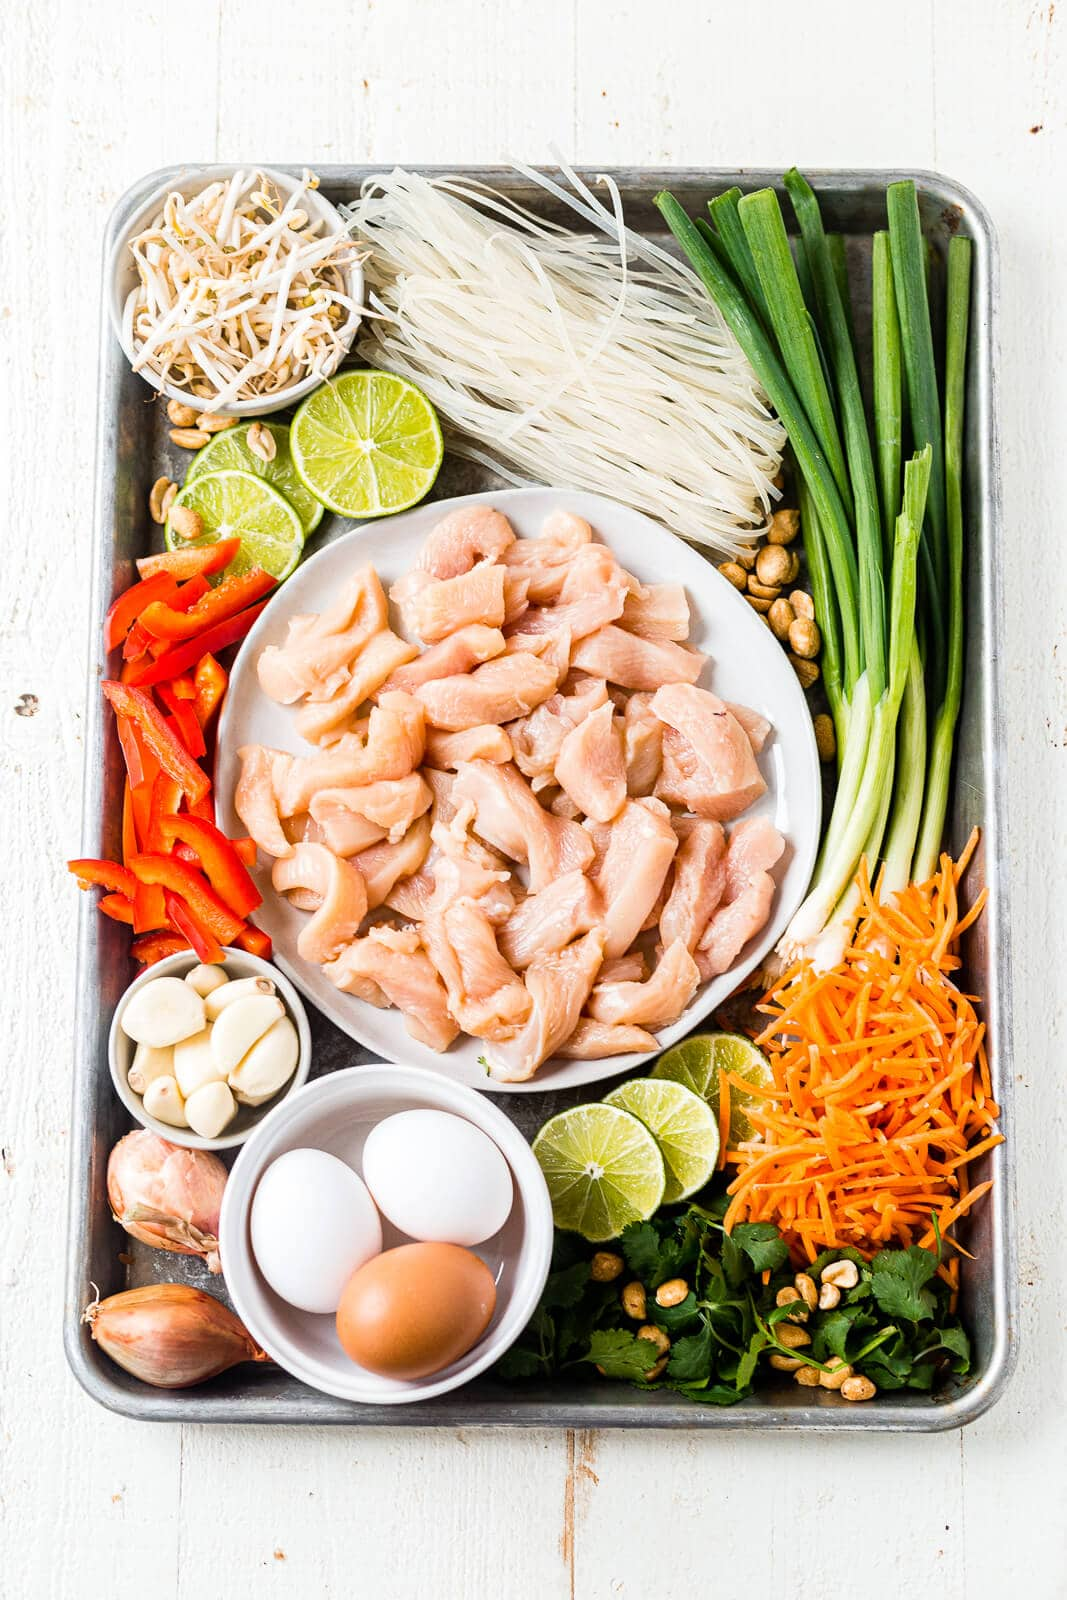 all of the ingredients for chicken pad thai arranged on a sheet pan